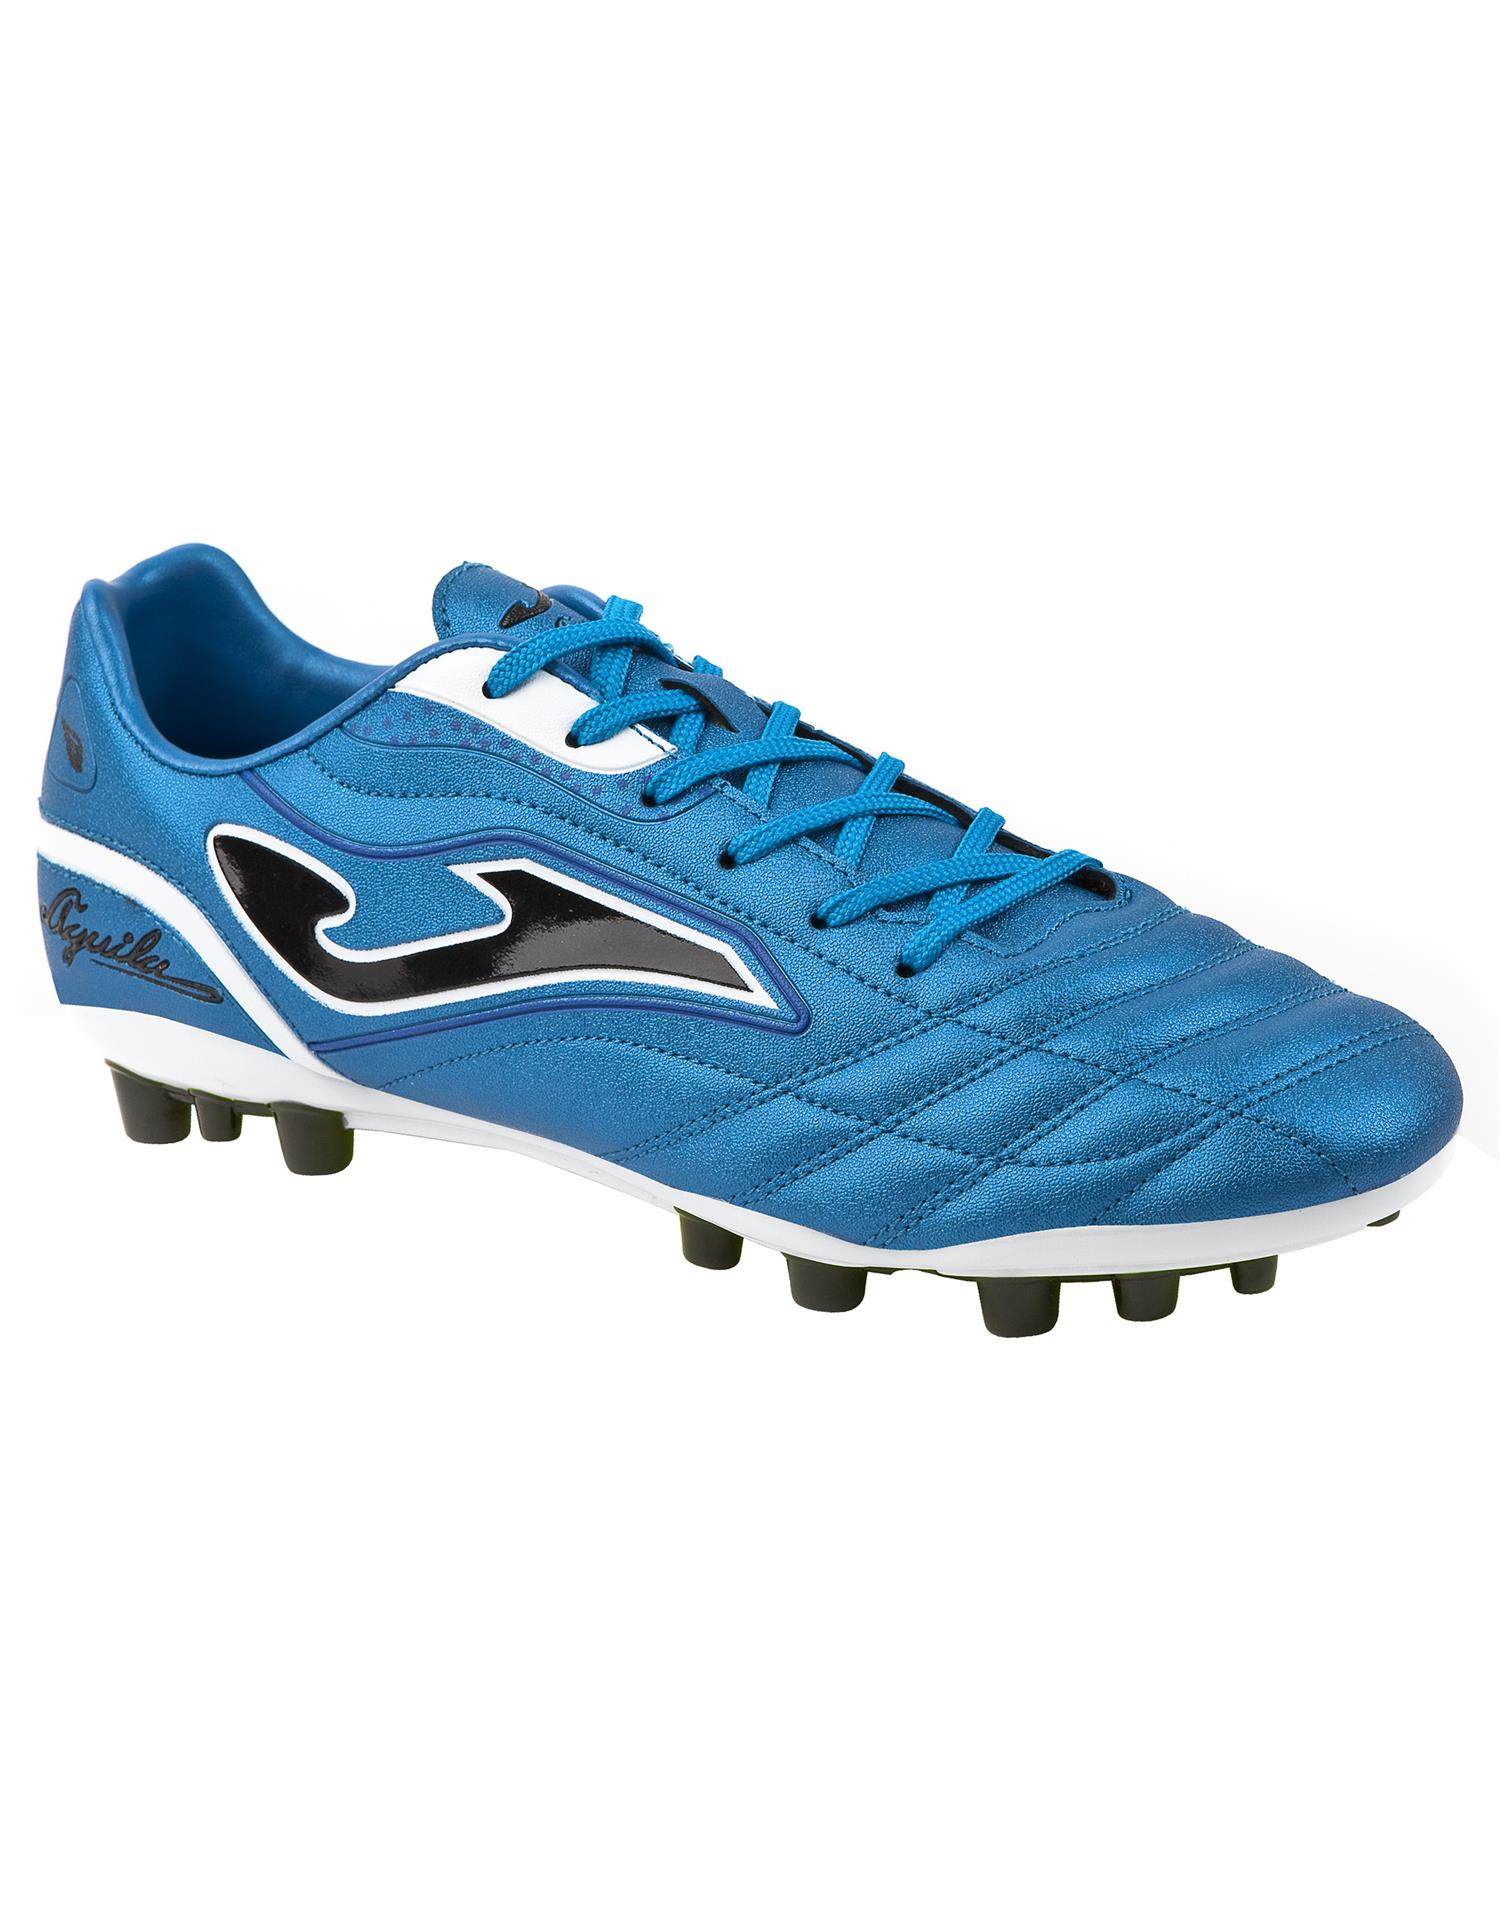 JOMA Scarpa Aguila 804 Royal Firm Ground (40.5 - ROYAL)